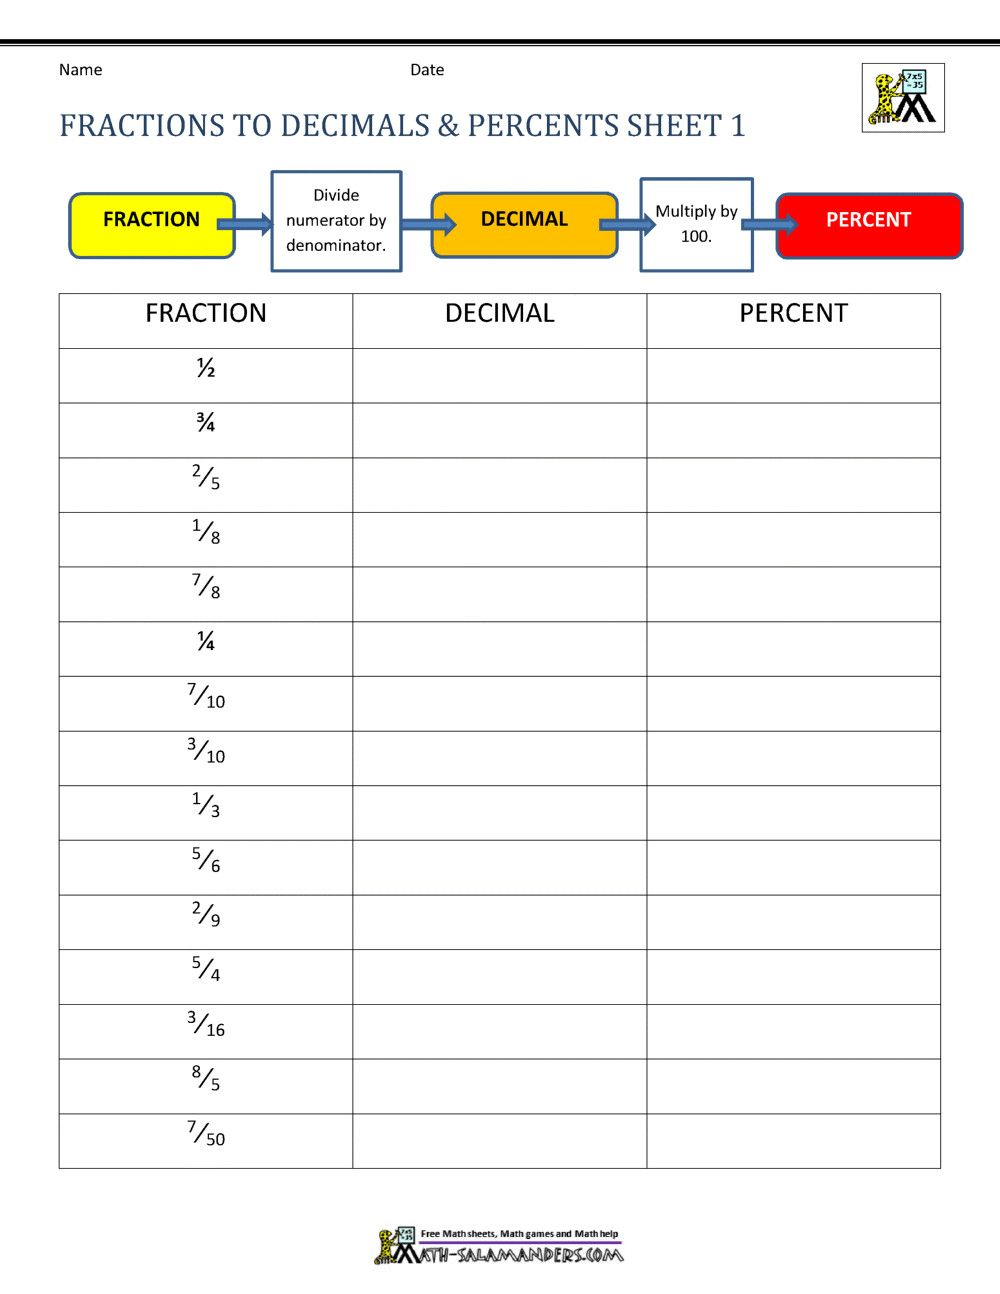 7 Fraction Decimal Percent Worksheet In 2020 With Images